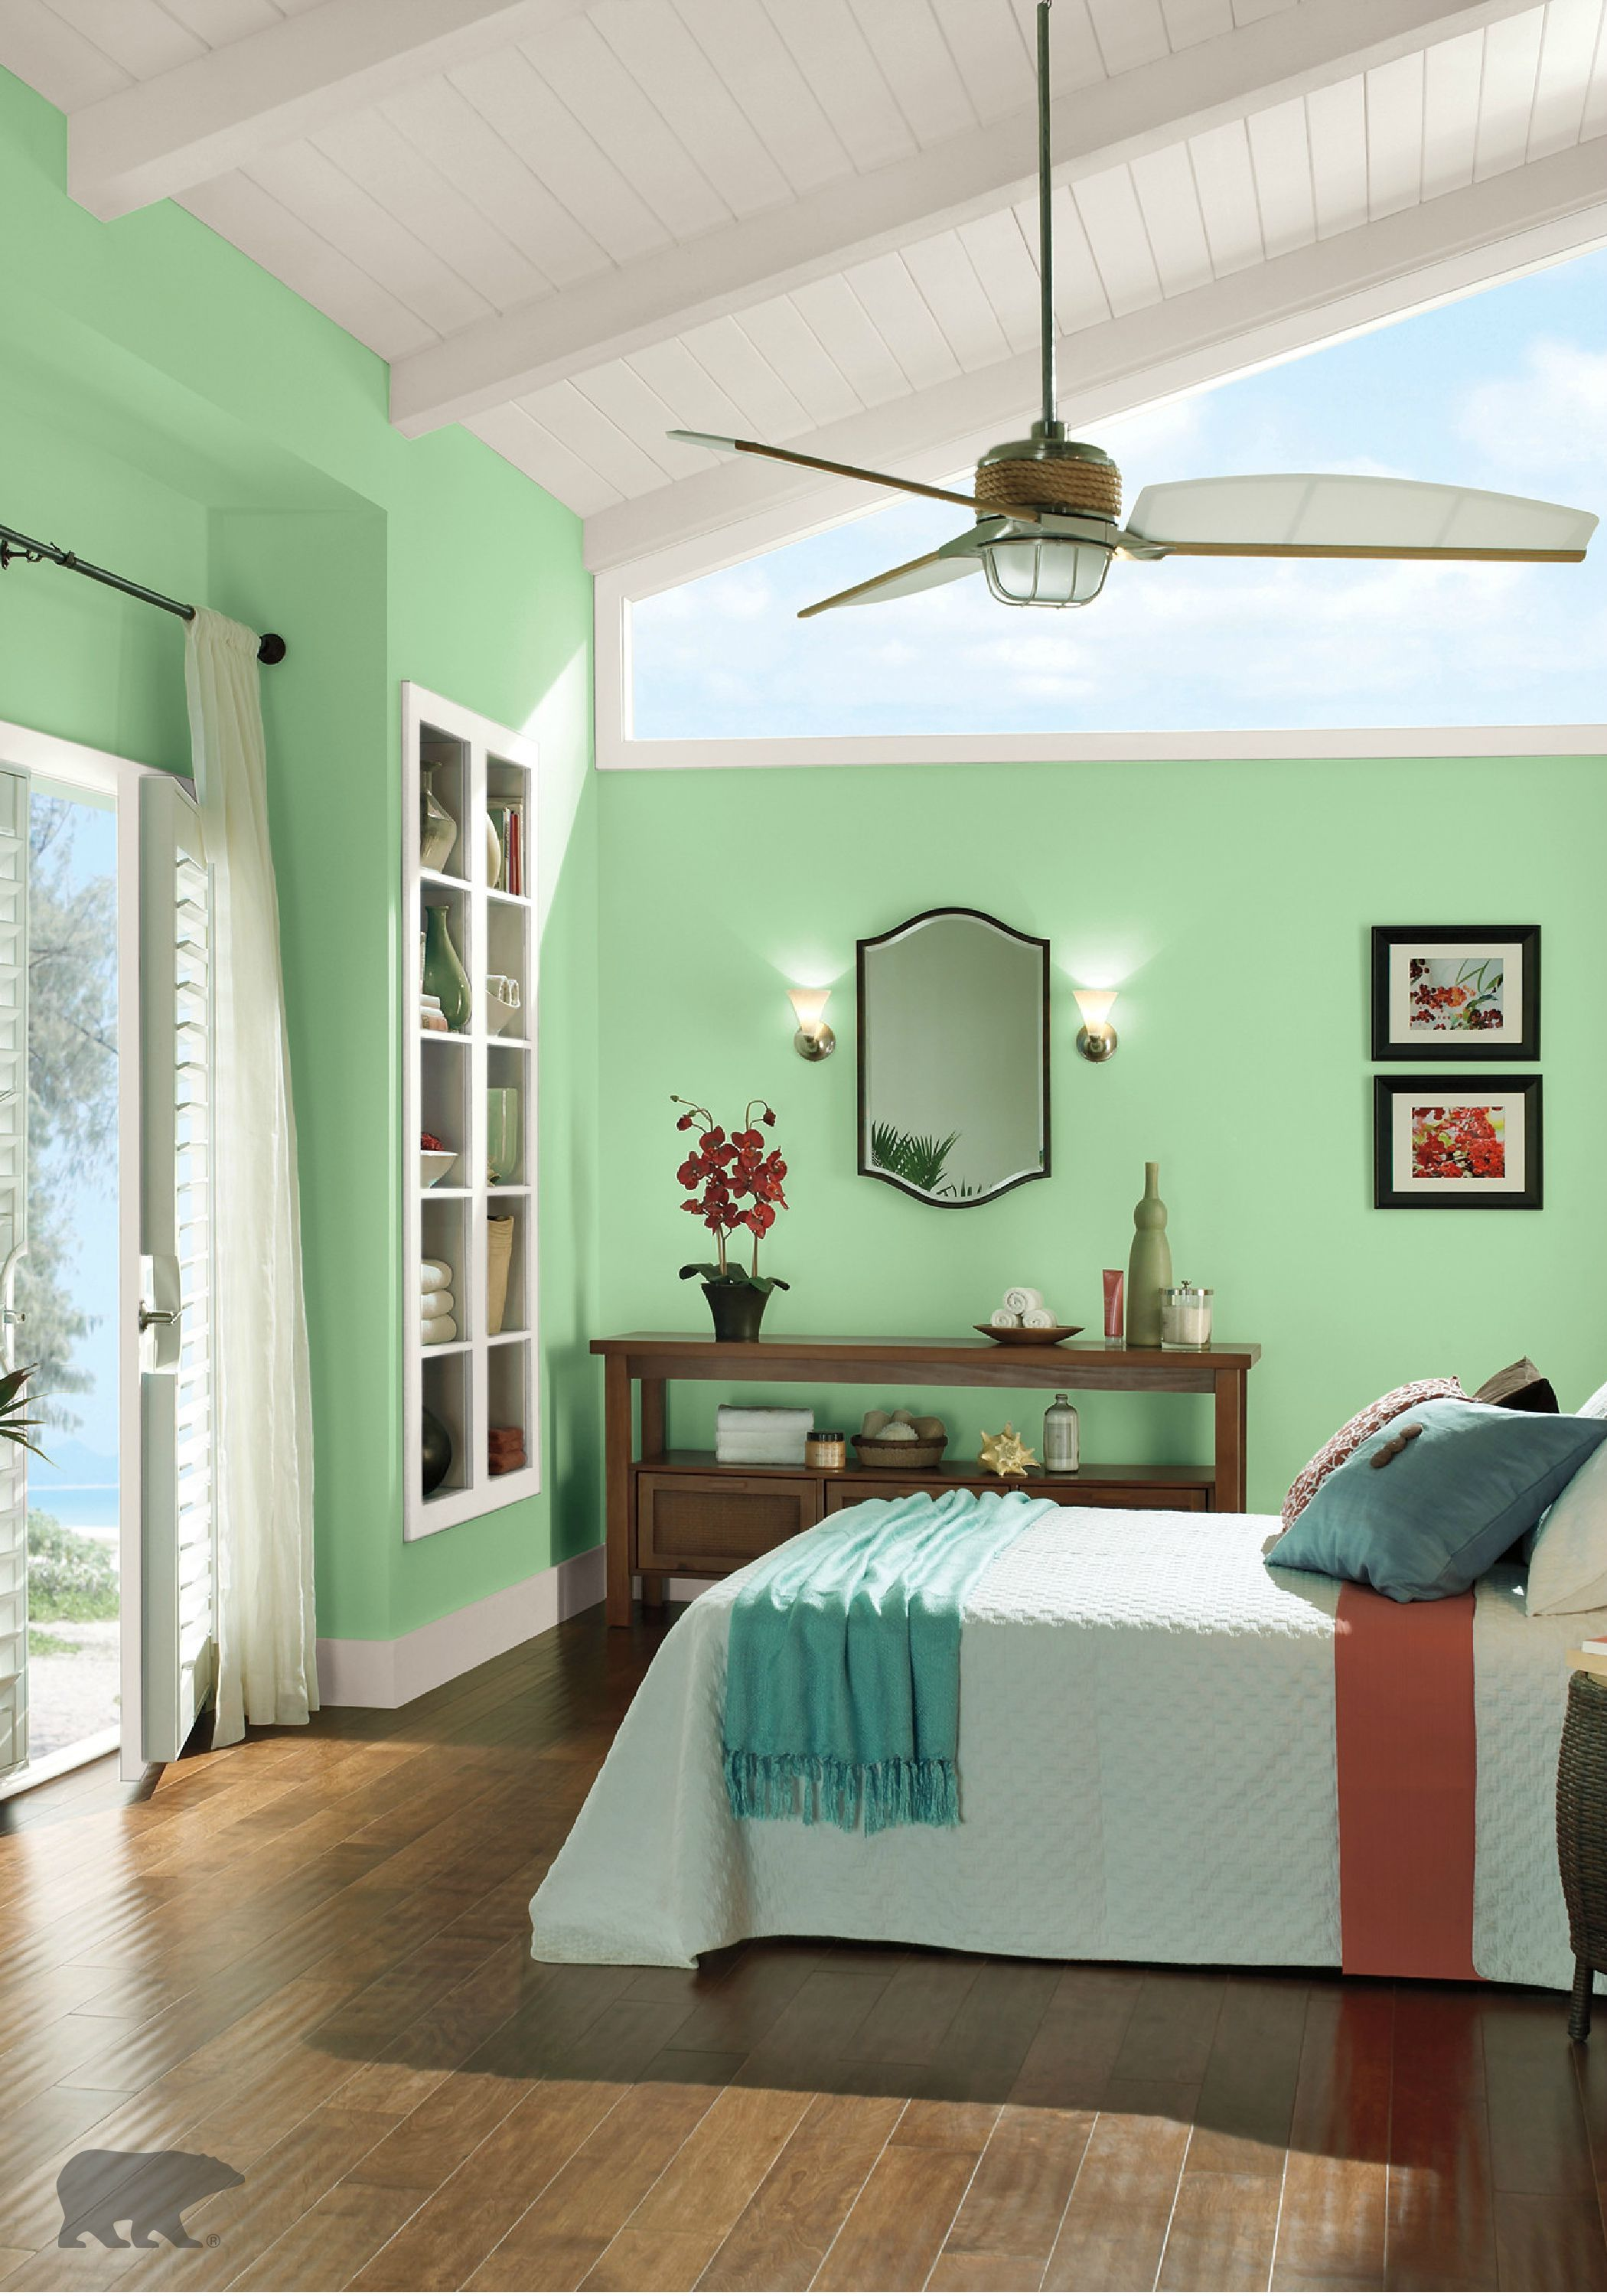 Green Rooms, Bedroom Wall Colors, Bedroom Paint Colors